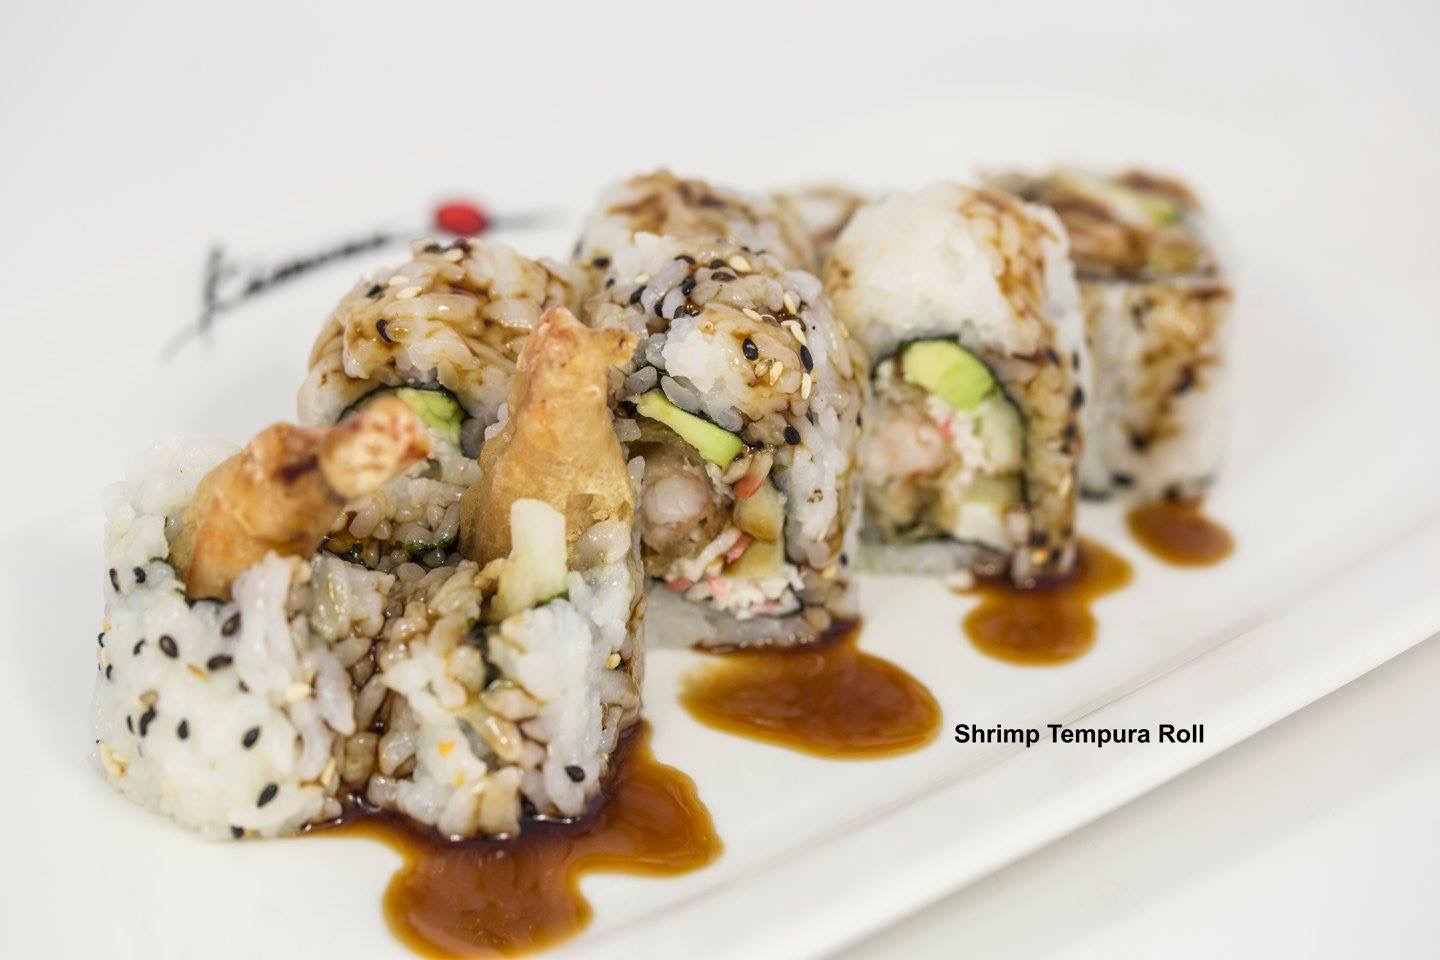 Shrimp Tempura Roll Image